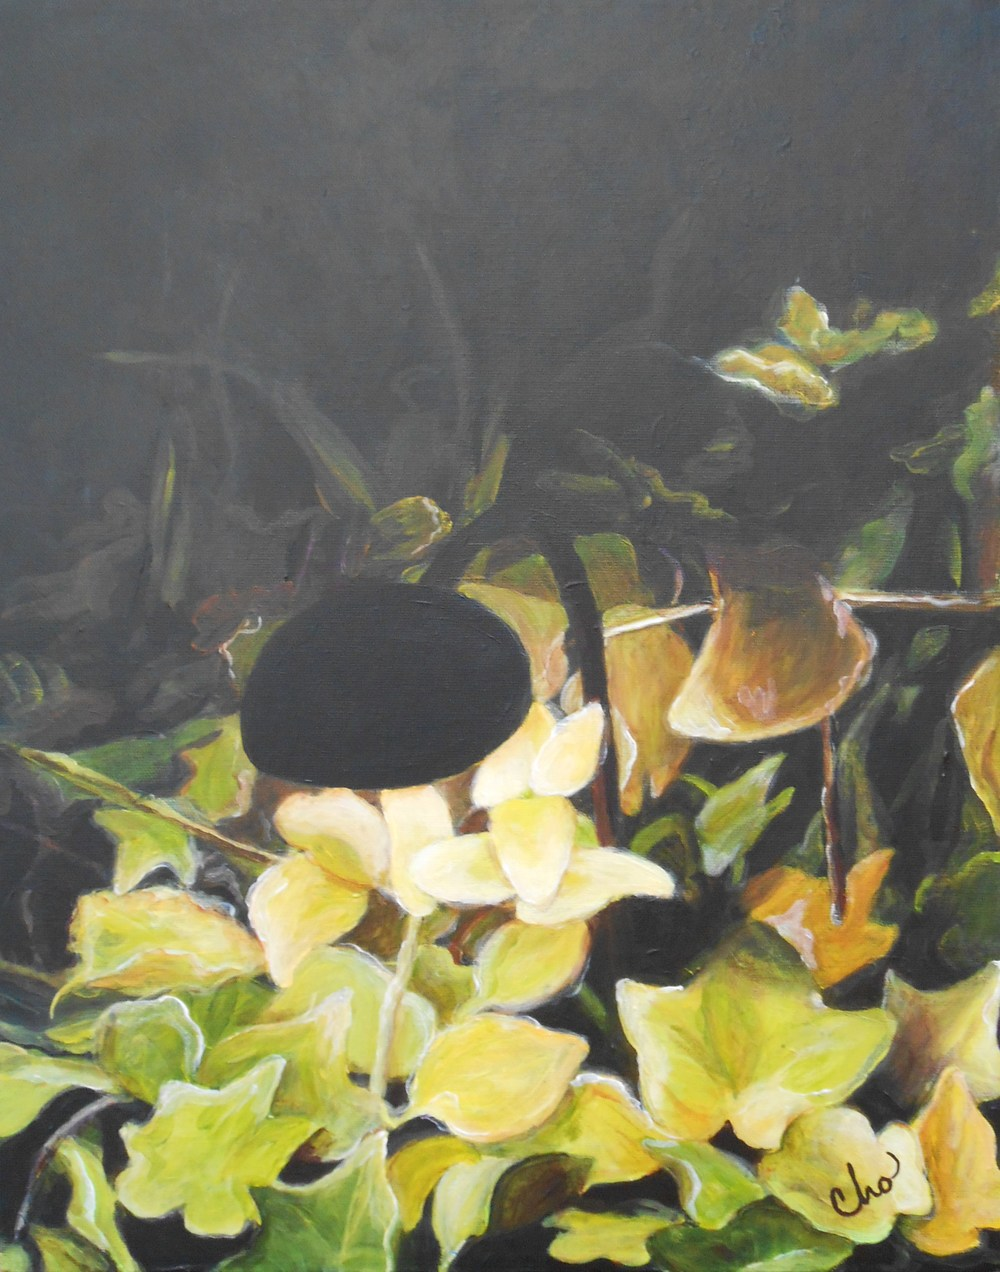 Light in a Dark Garden (No. 2)--April 2012